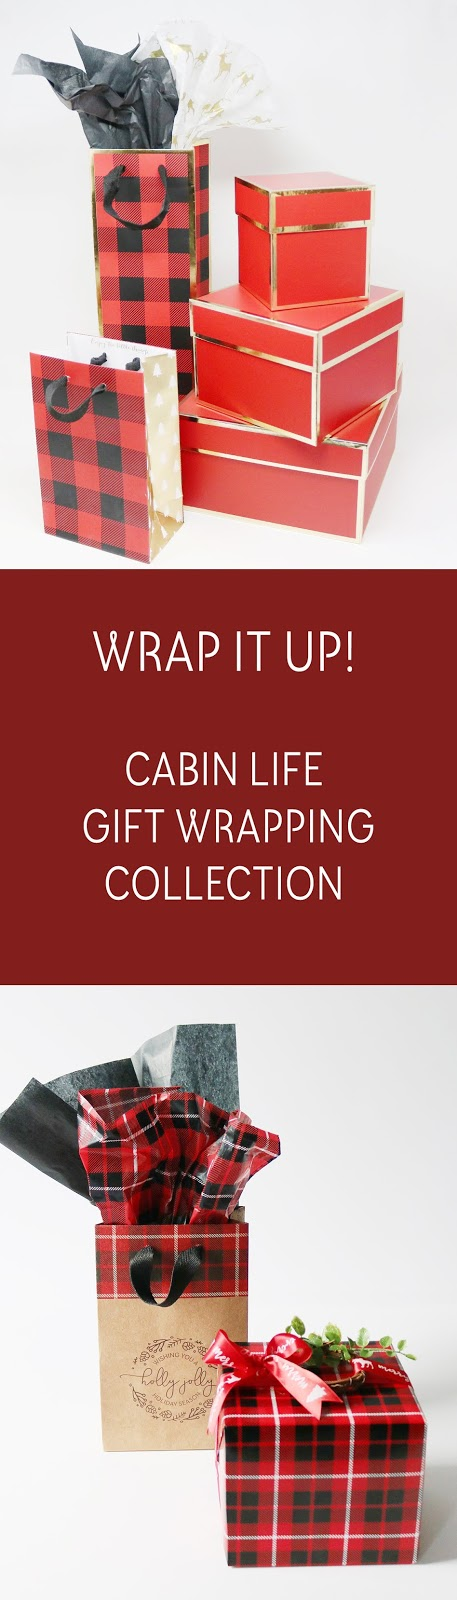 Cabin Life Holiday Collection - wildwood theme & winter plaids | www.creativebag.com